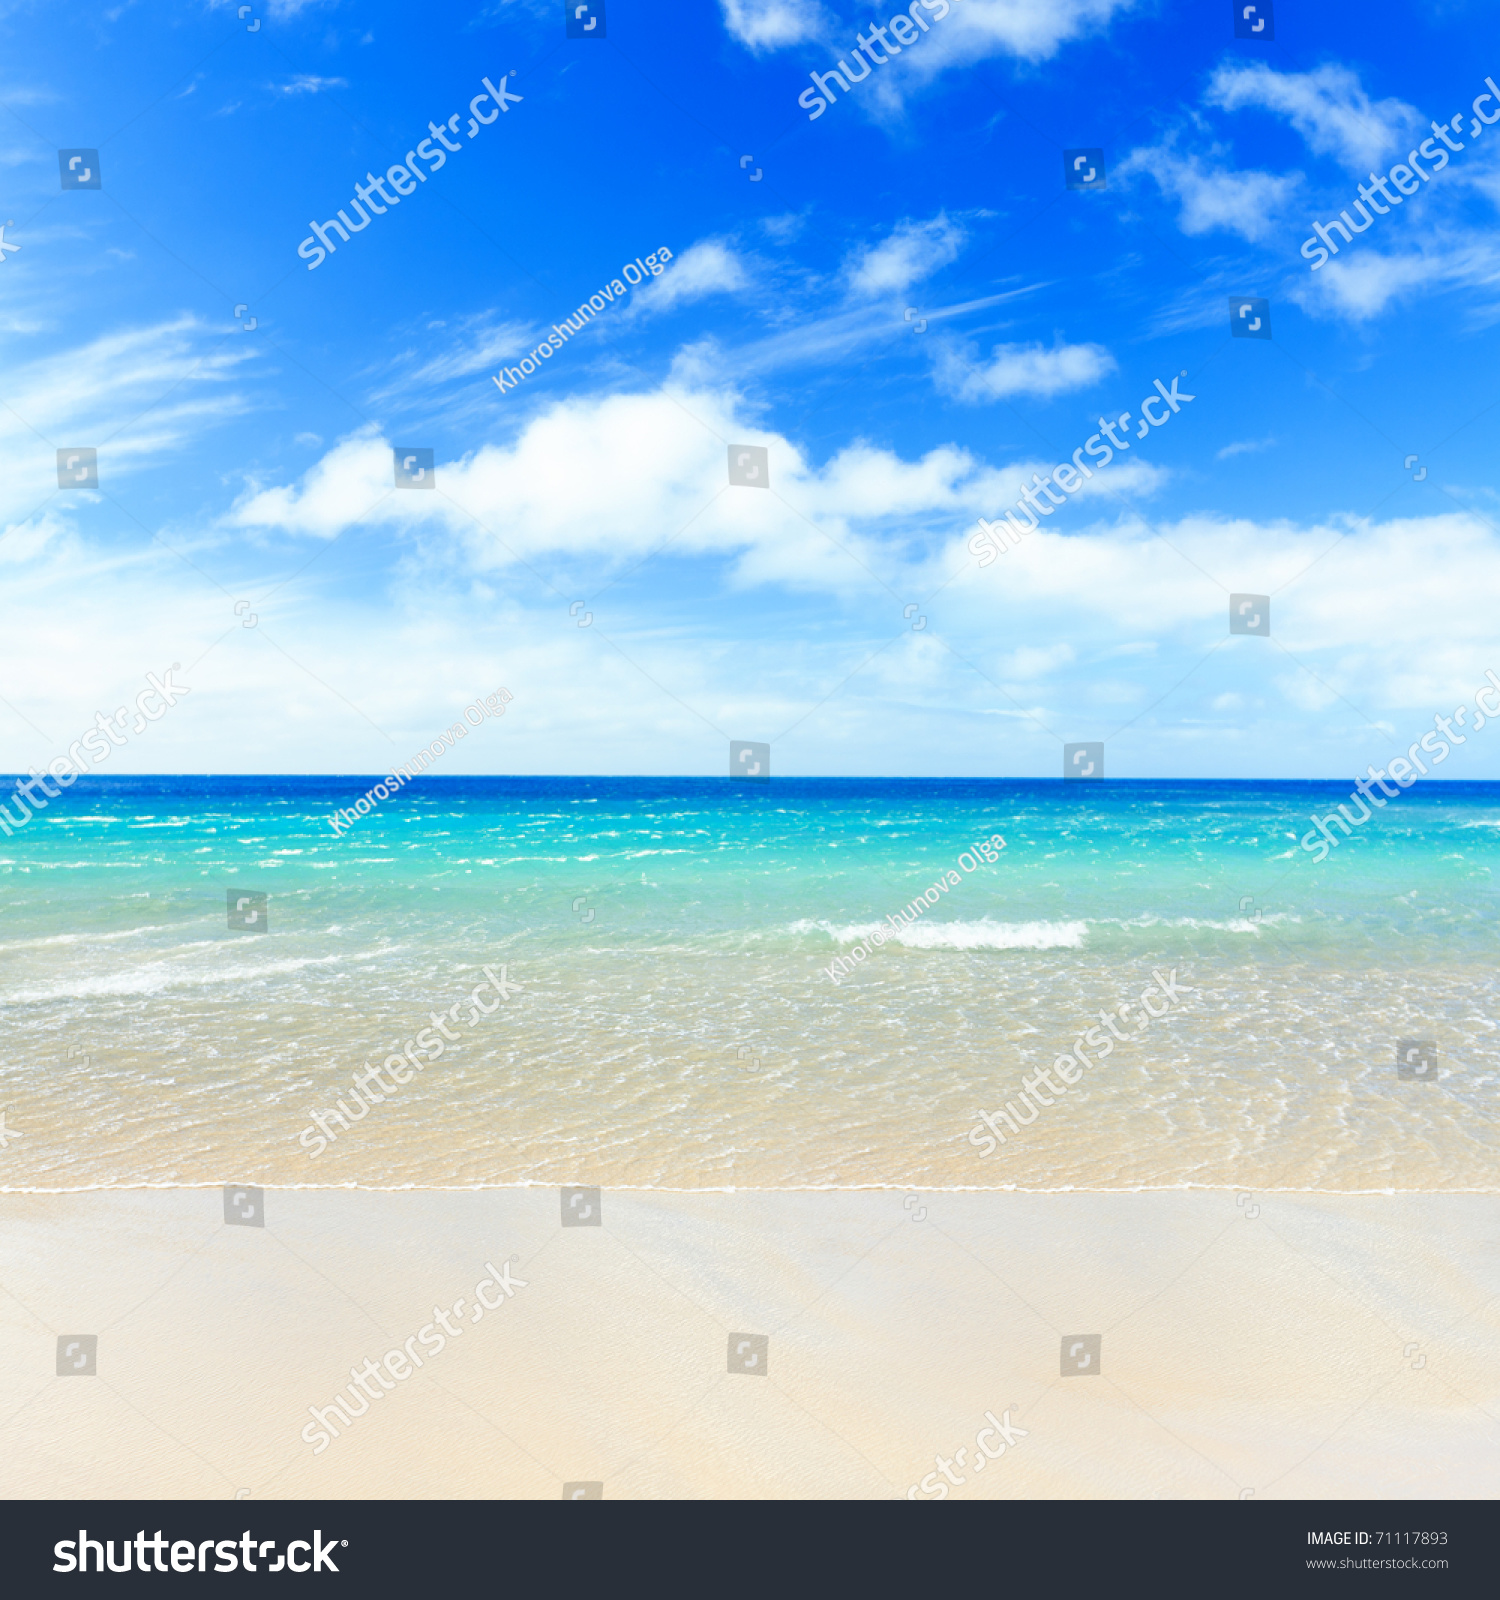 Beautiful Sunny Day At Tropical Beach Royalty Free Stock: Tropical Sandy Beach At Summer Sunny Day Stock Photo